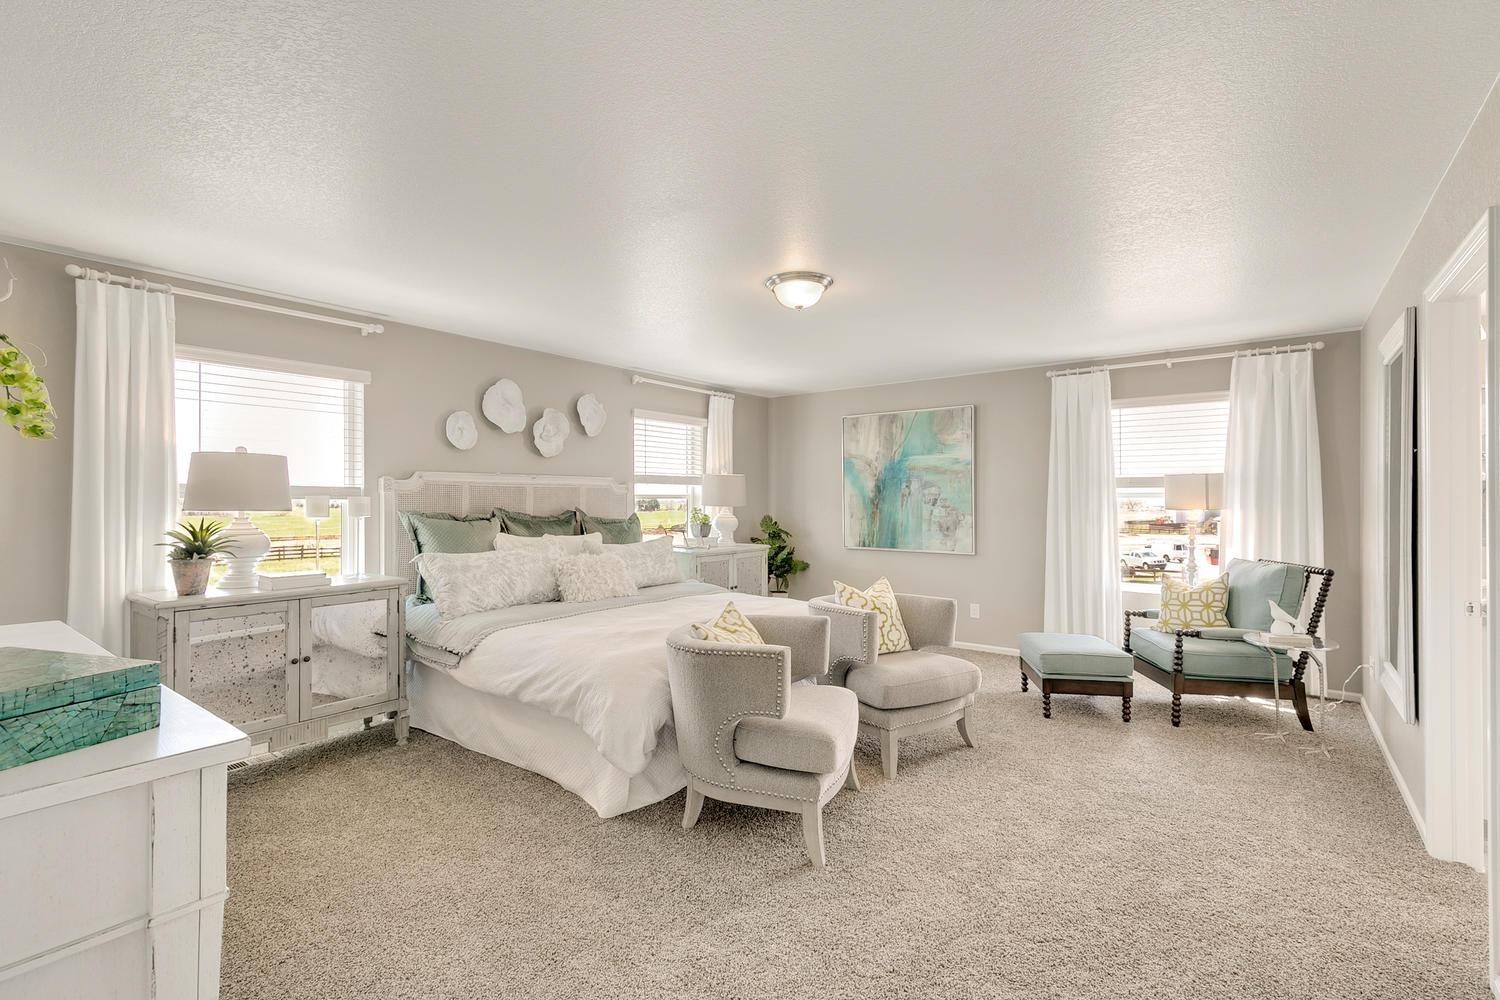 Bedroom featured in the HERRING By D.R. Horton in Greeley, CO